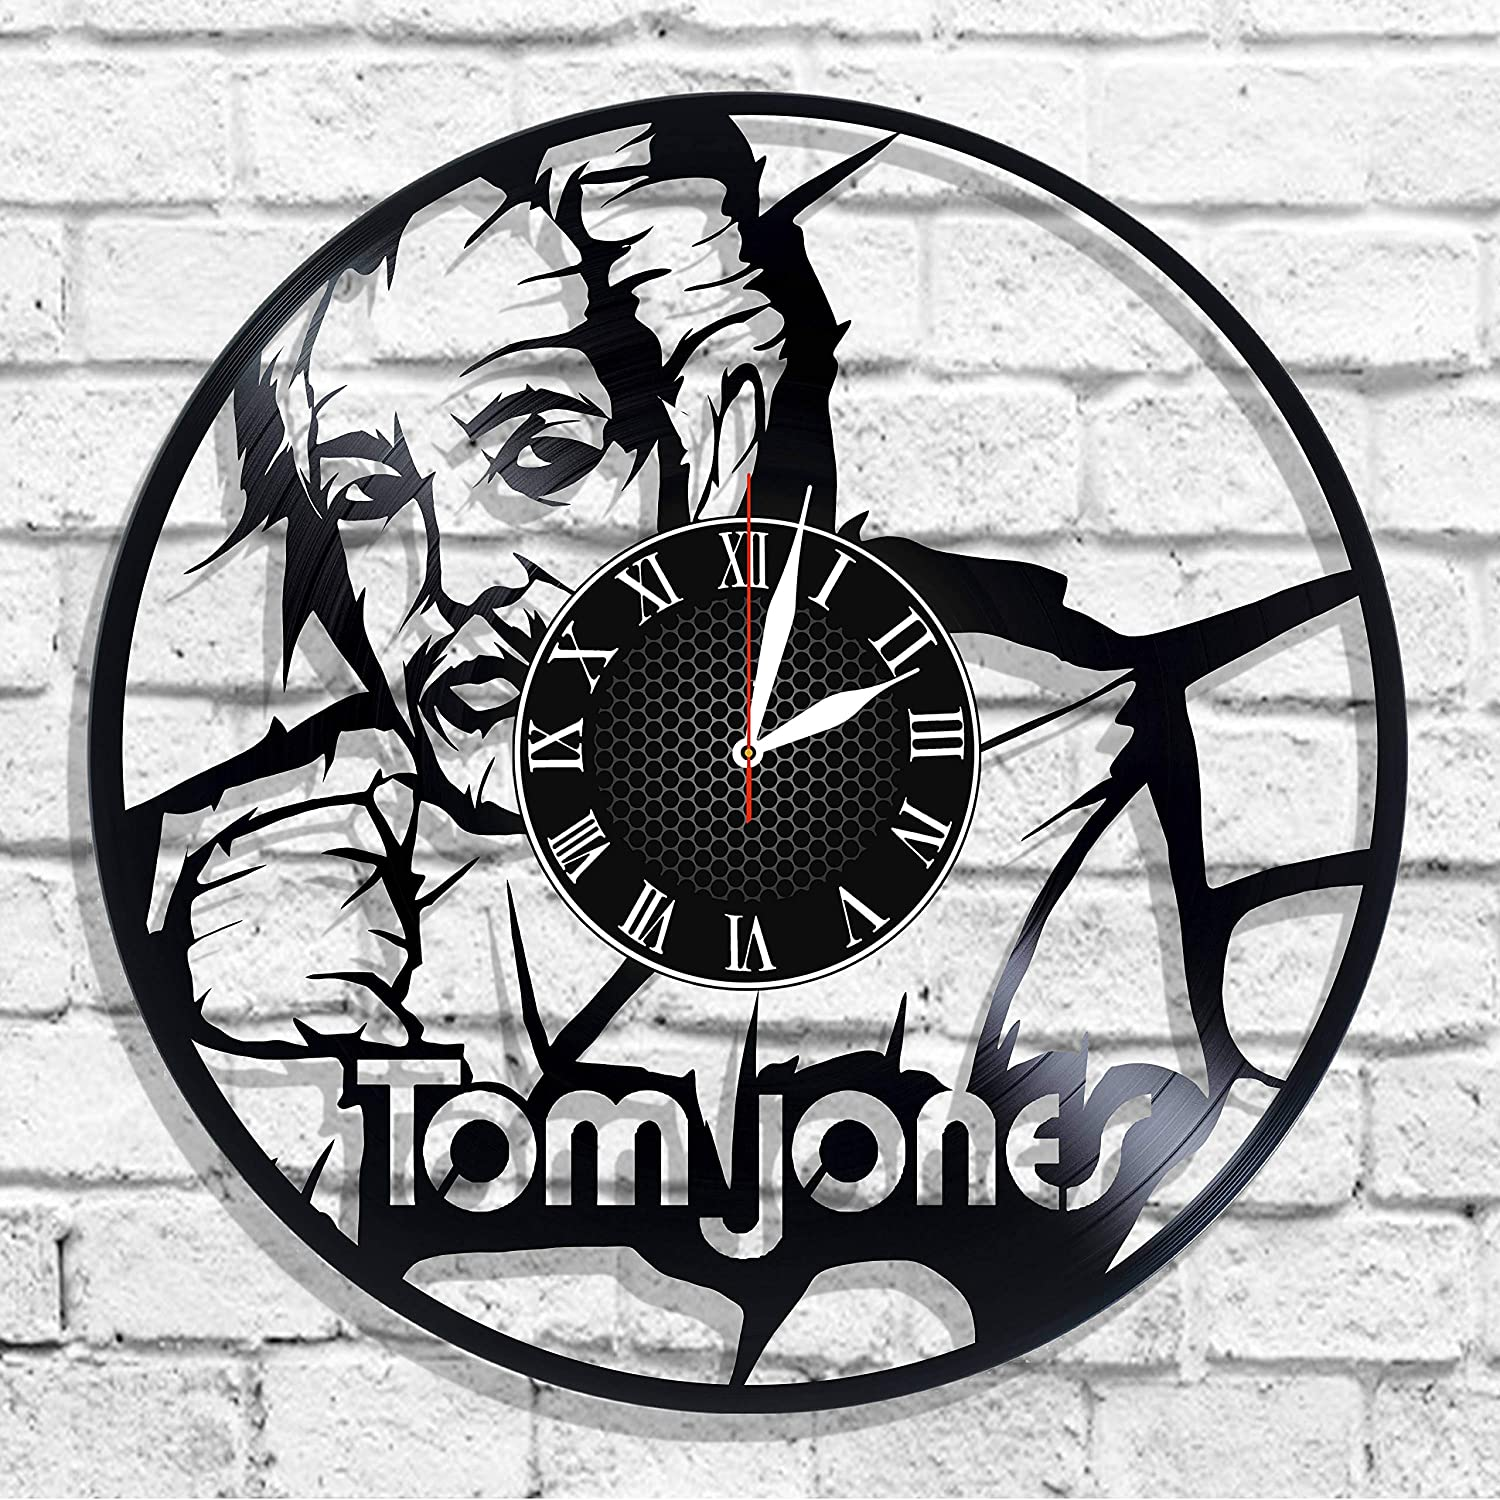 Amazon com: Tom Jones singer desing wall clock, Tom Jones